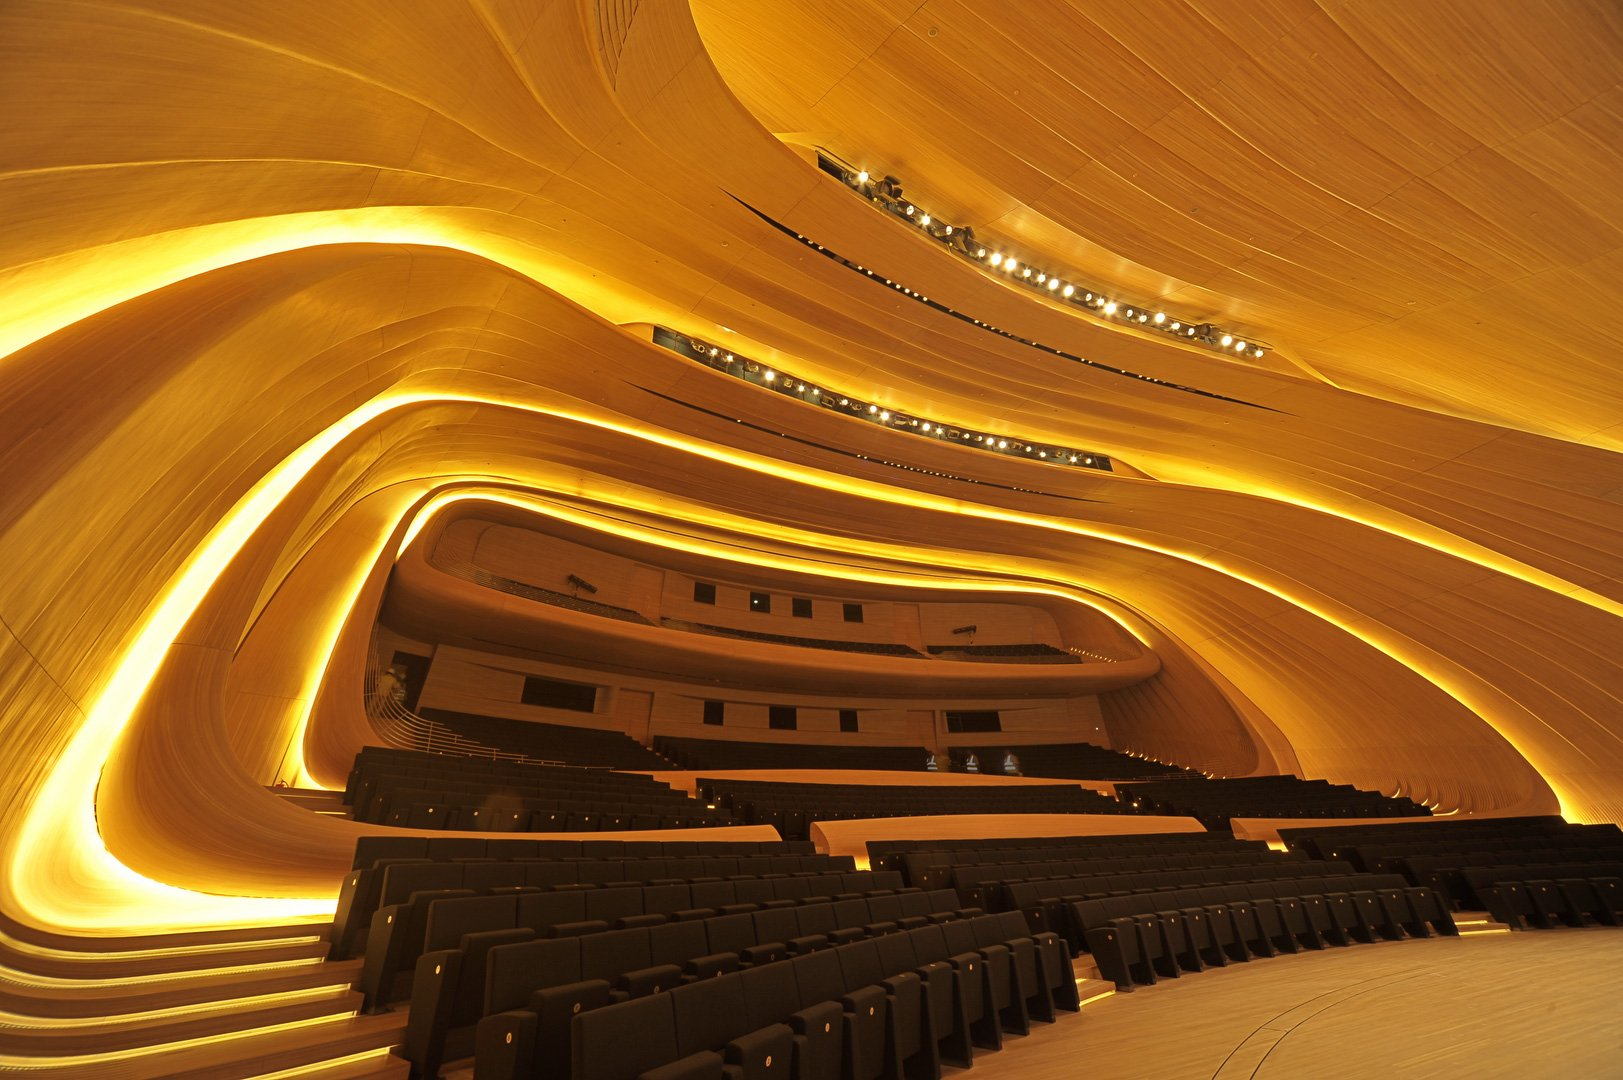 Zaha Hadid Architects Heydar Aliyev Center